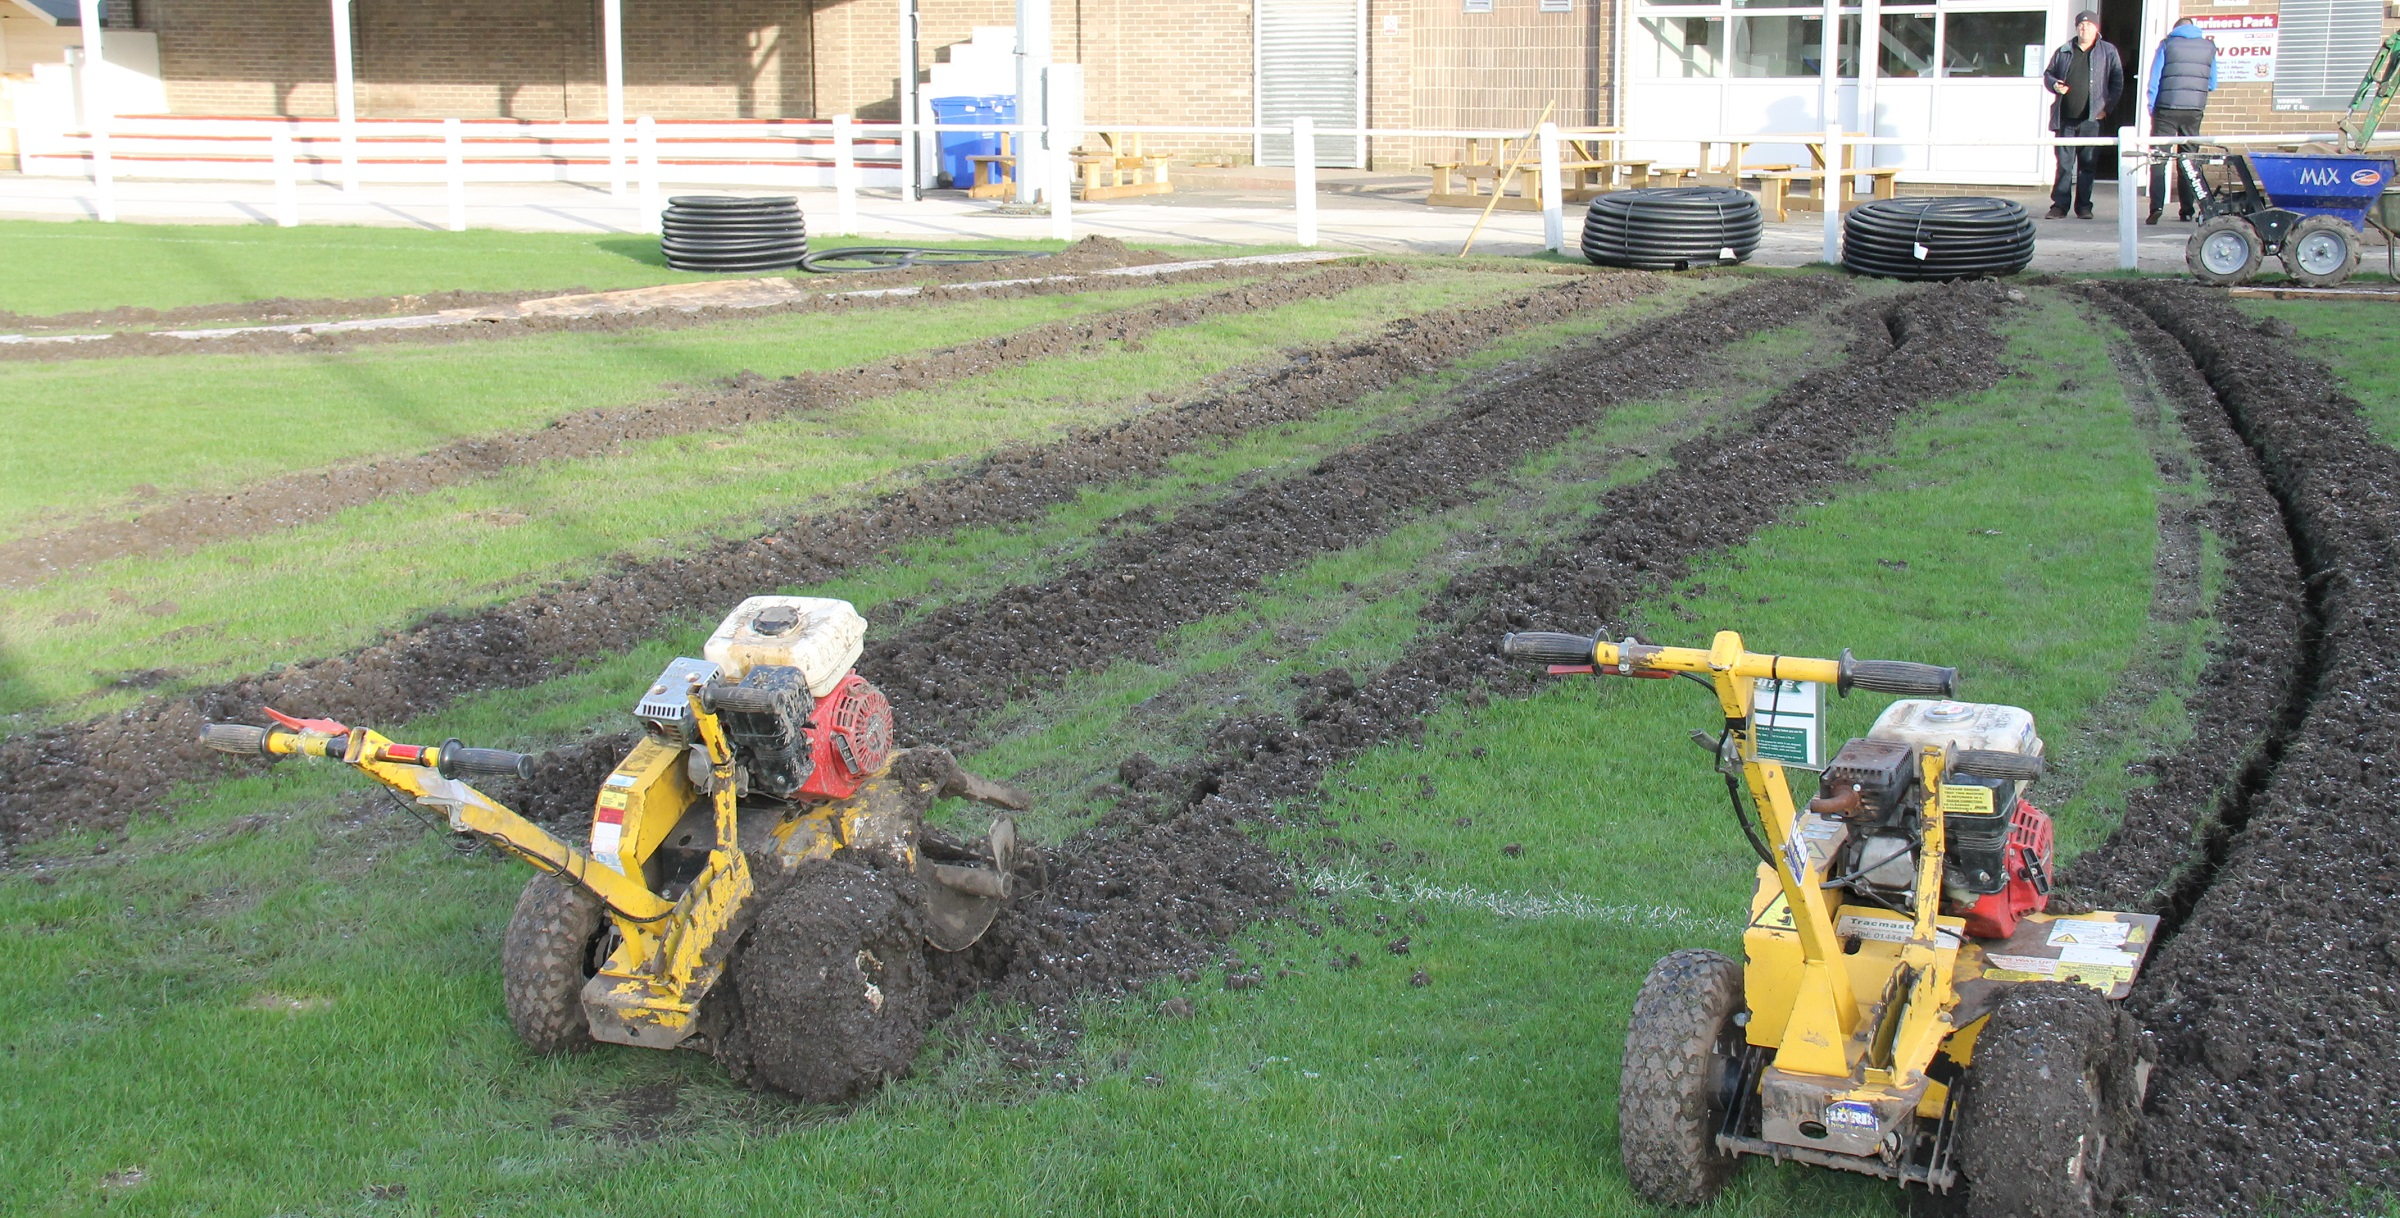 Volunteers requested as work continues on Mariners Park pitch